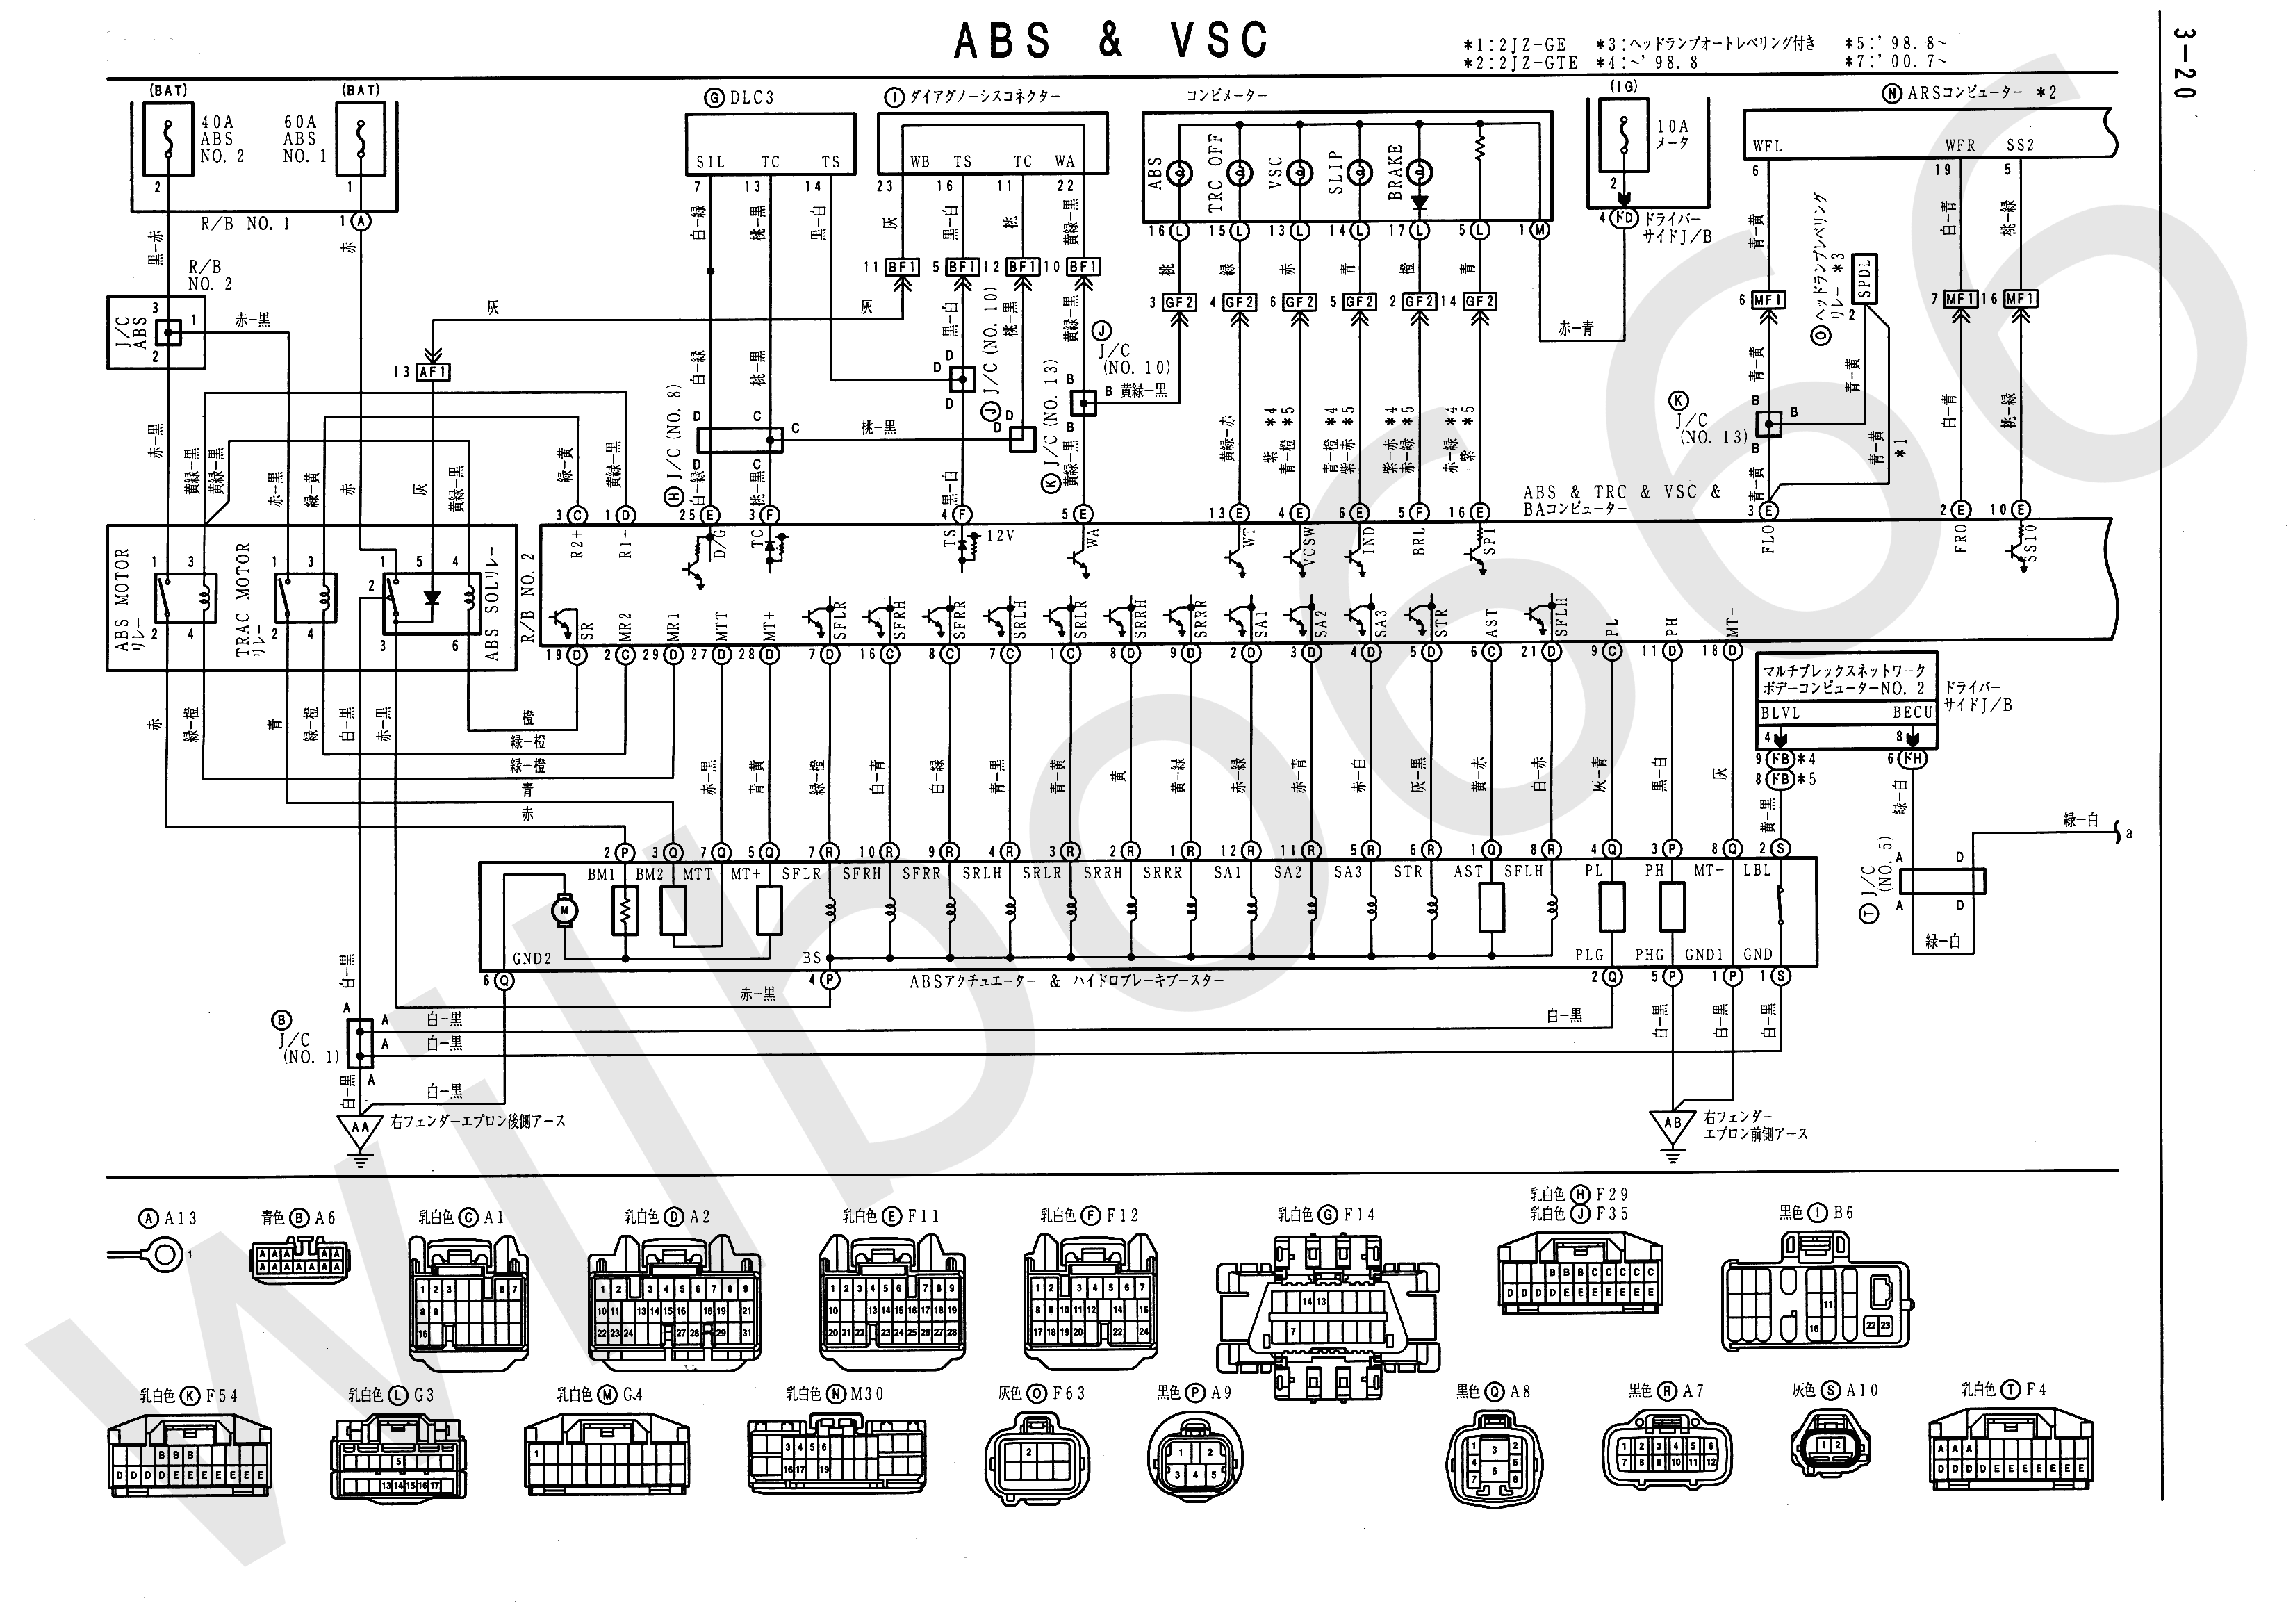 western star wiring schematic - auto electrical wiring diagram wiring diagram for westernstar starter wiring diagrams starter switch wiring diagram for 02 tahoe